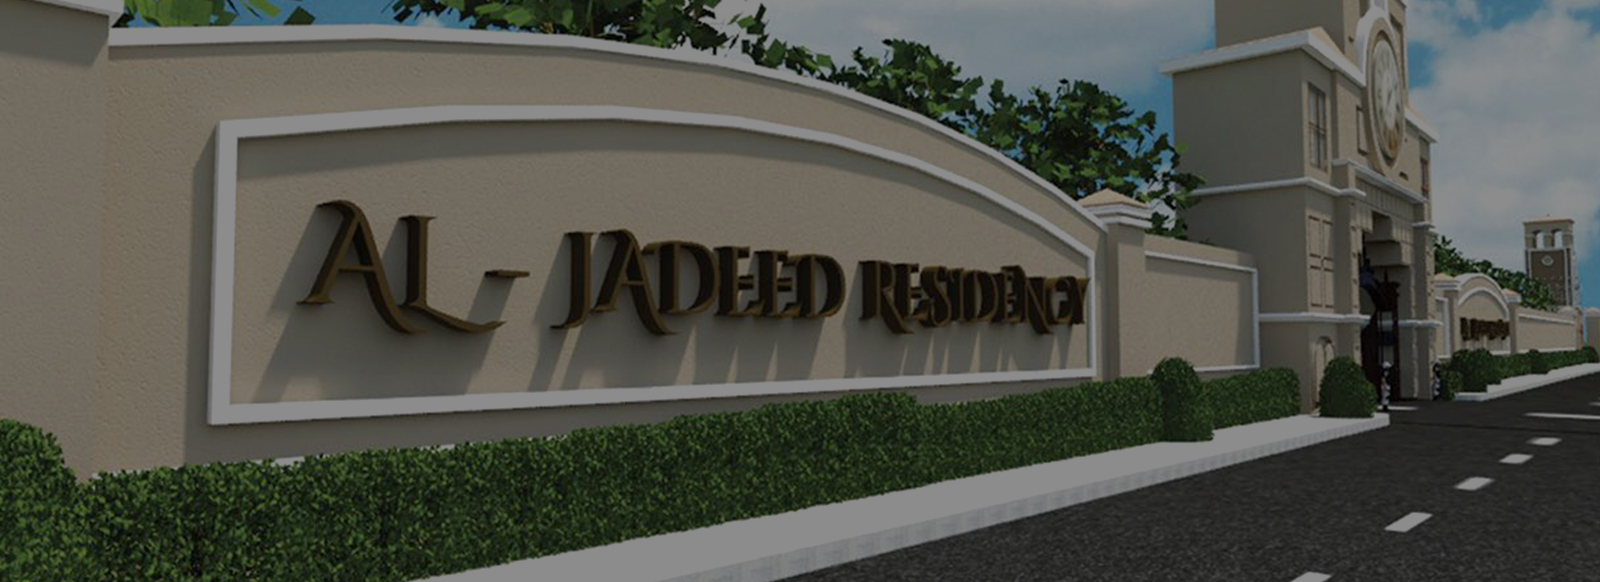 Al Jadeed Residency